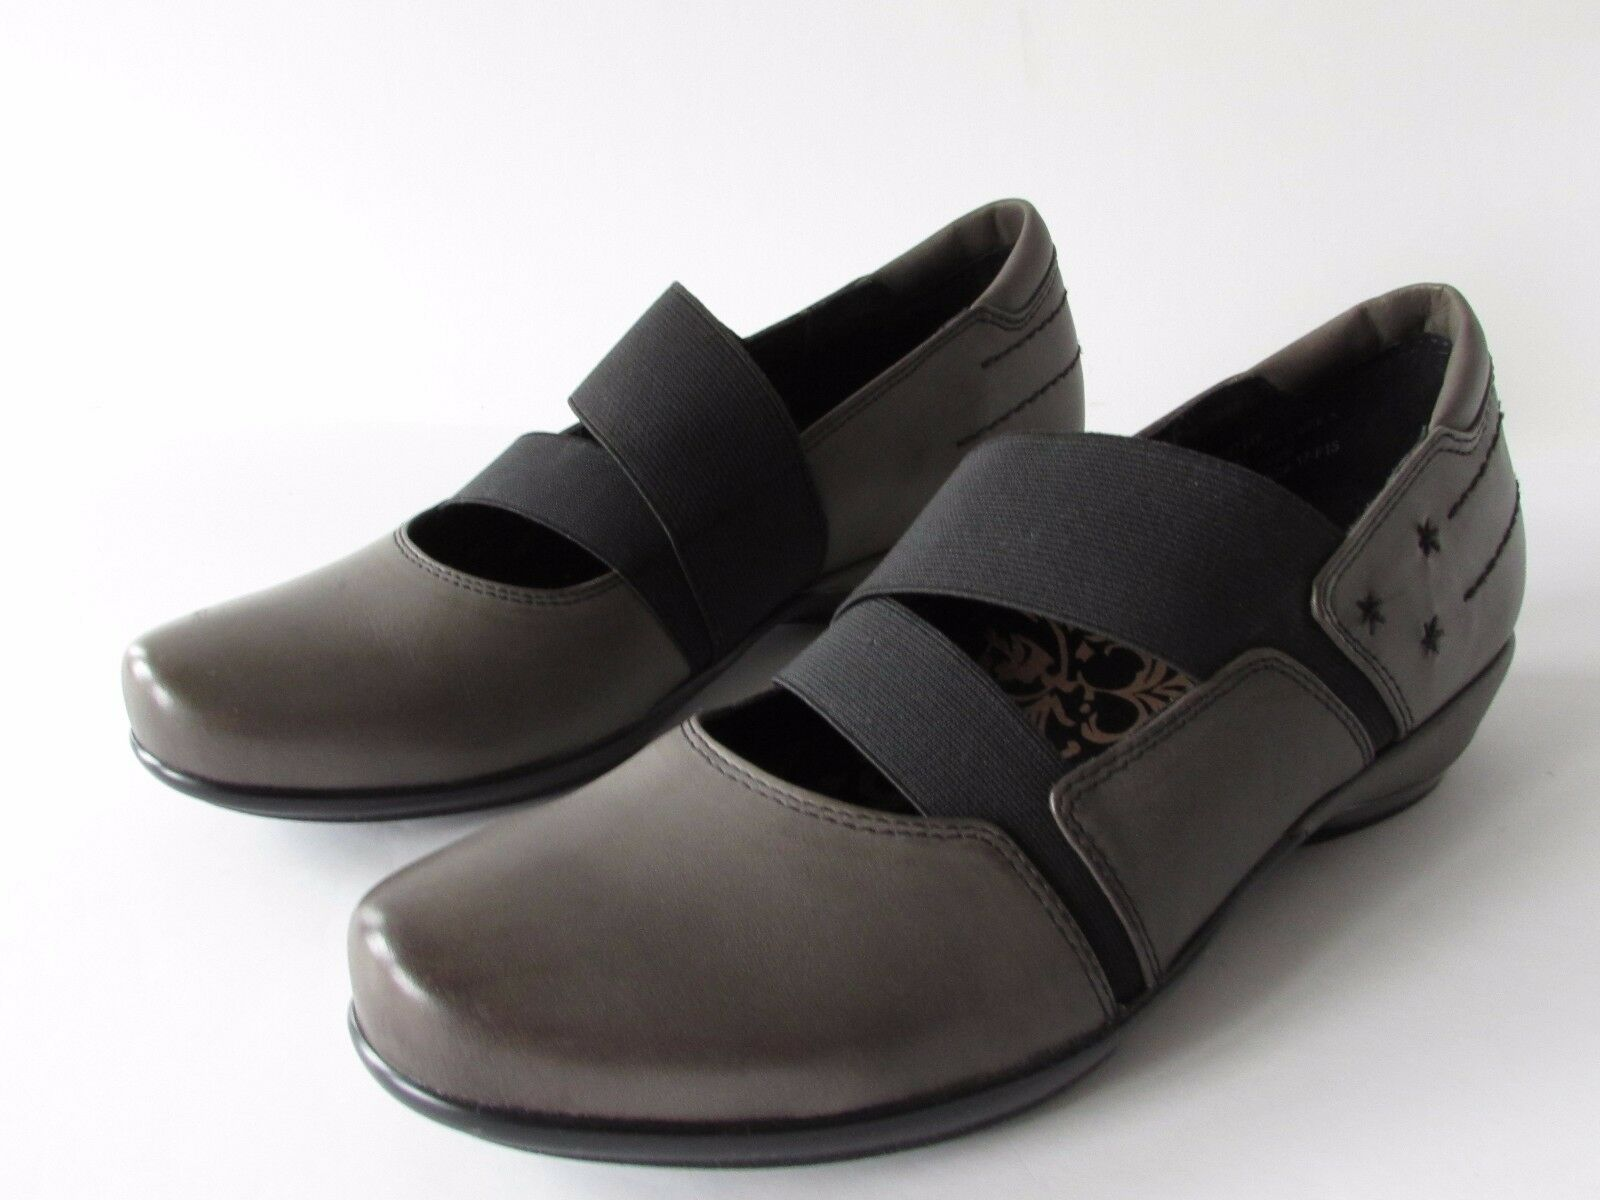 Aetrex Mary Grigio Leather  Arch Support Memory Foam Stretch Mary Aetrex Jane Shoes, size 8.5 88bb7a